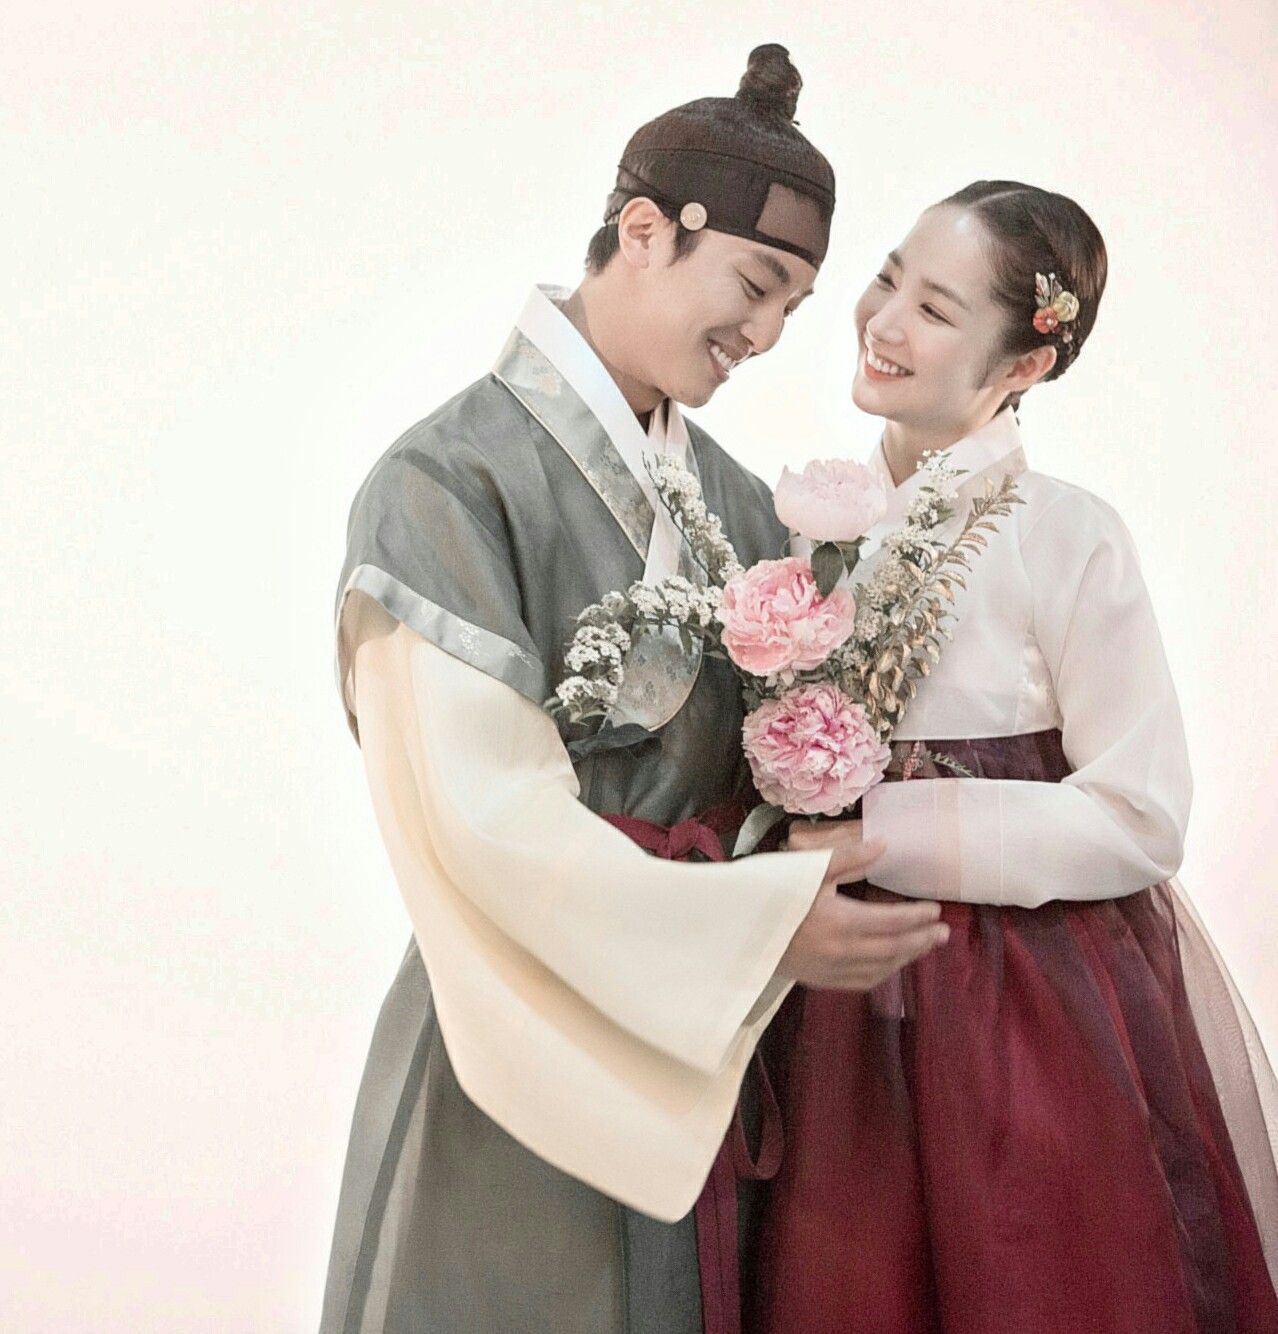 Queen for seven days episodes 2017 park min young for Edric woo wedding dresses